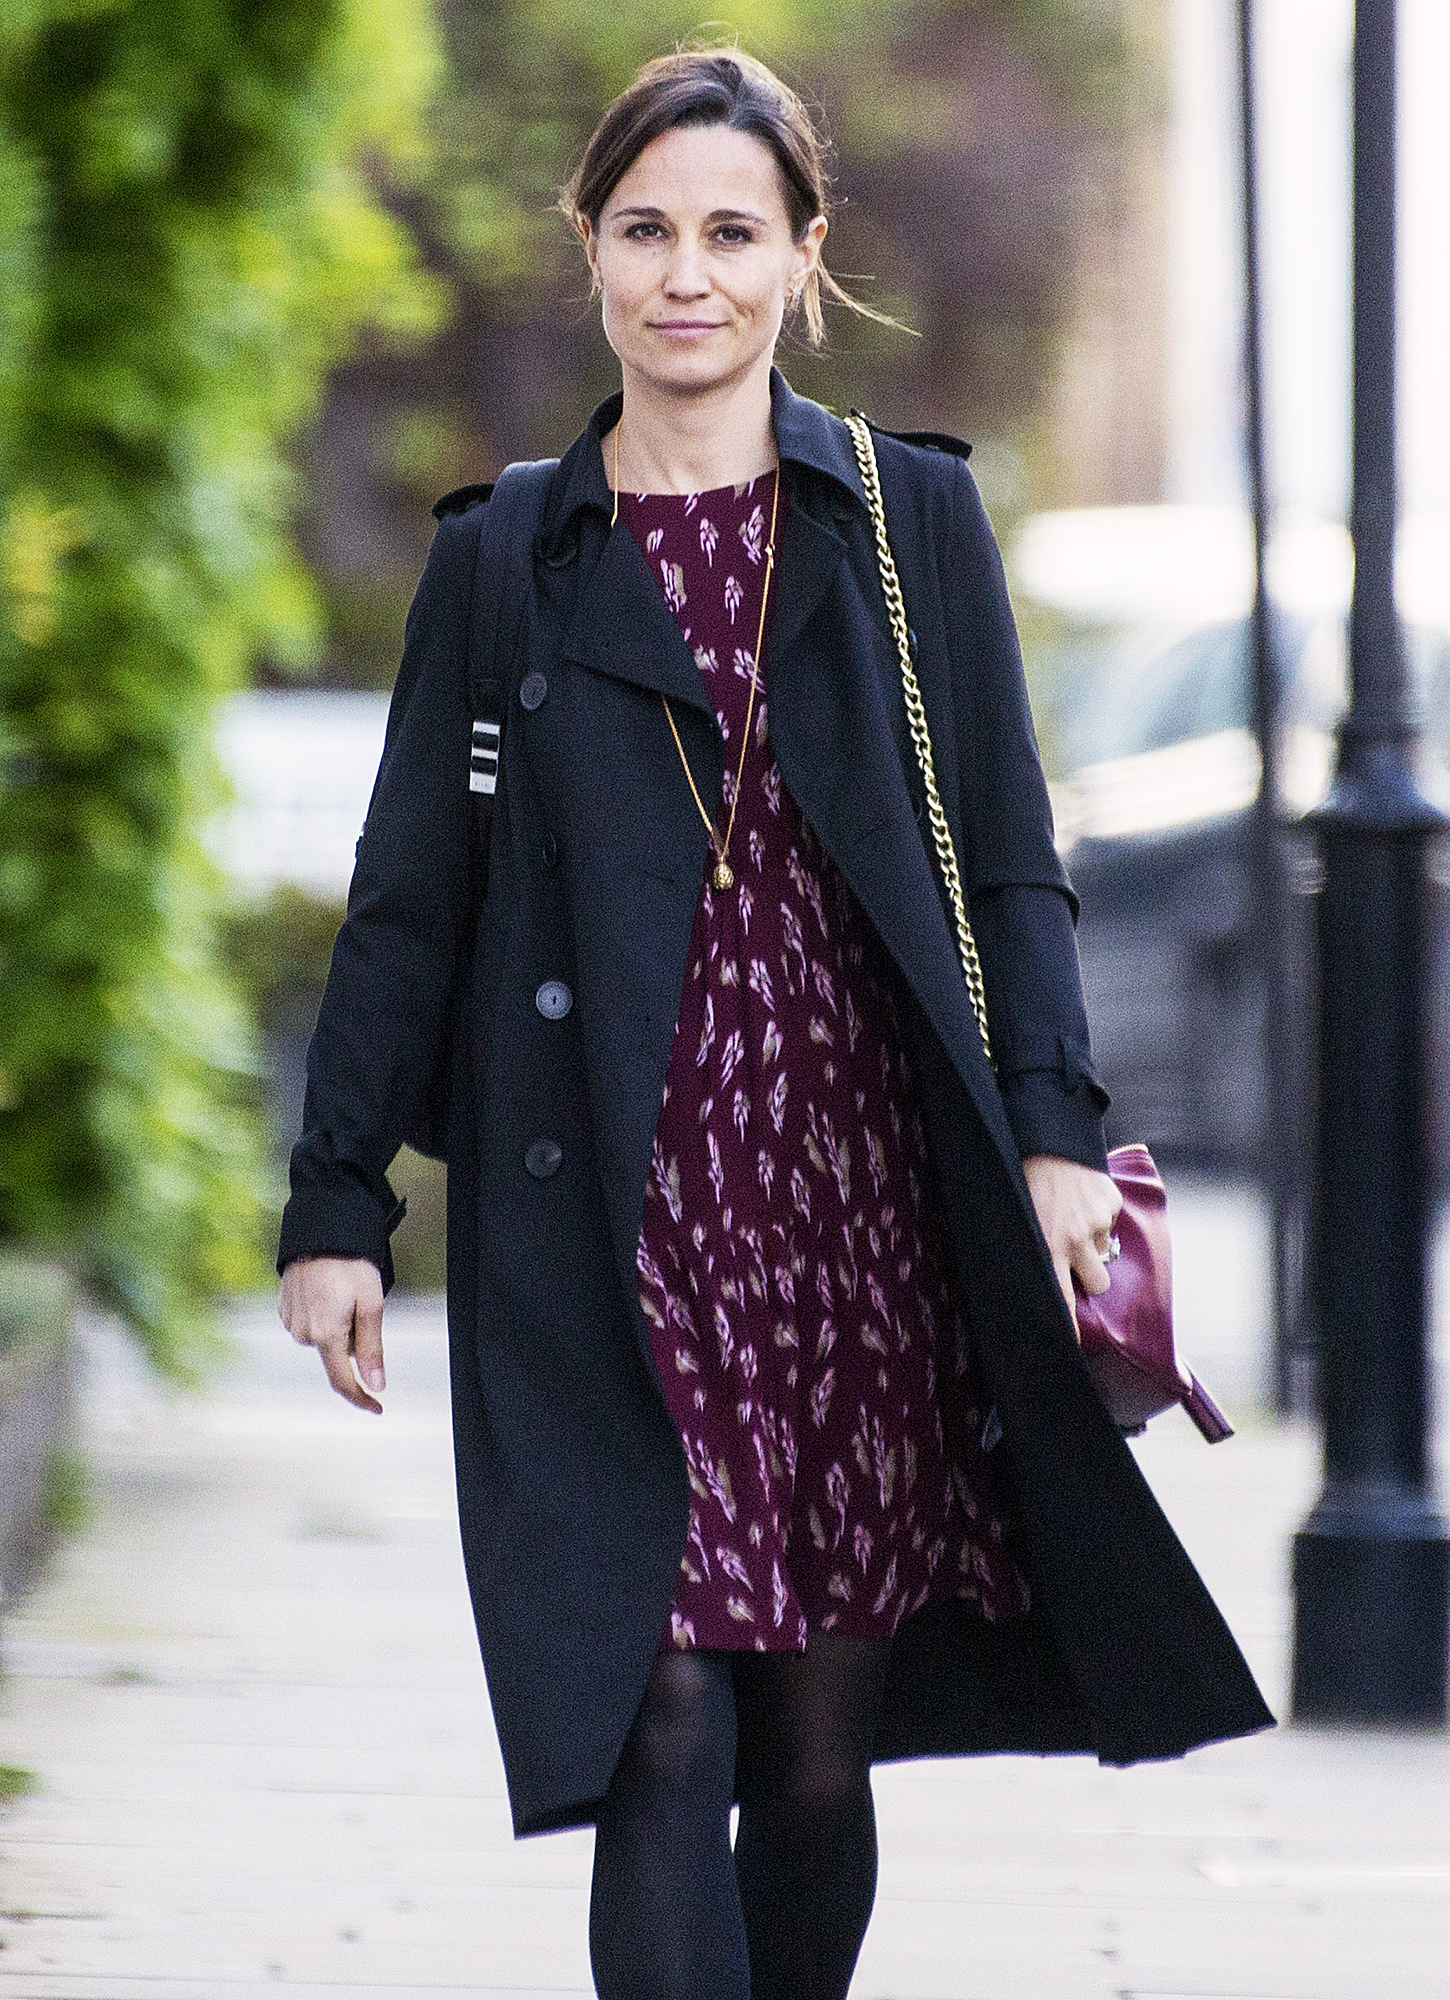 Pregnant Pippa Middleton Flaunts Tiny Baby Bump in Floral ... - photo#20